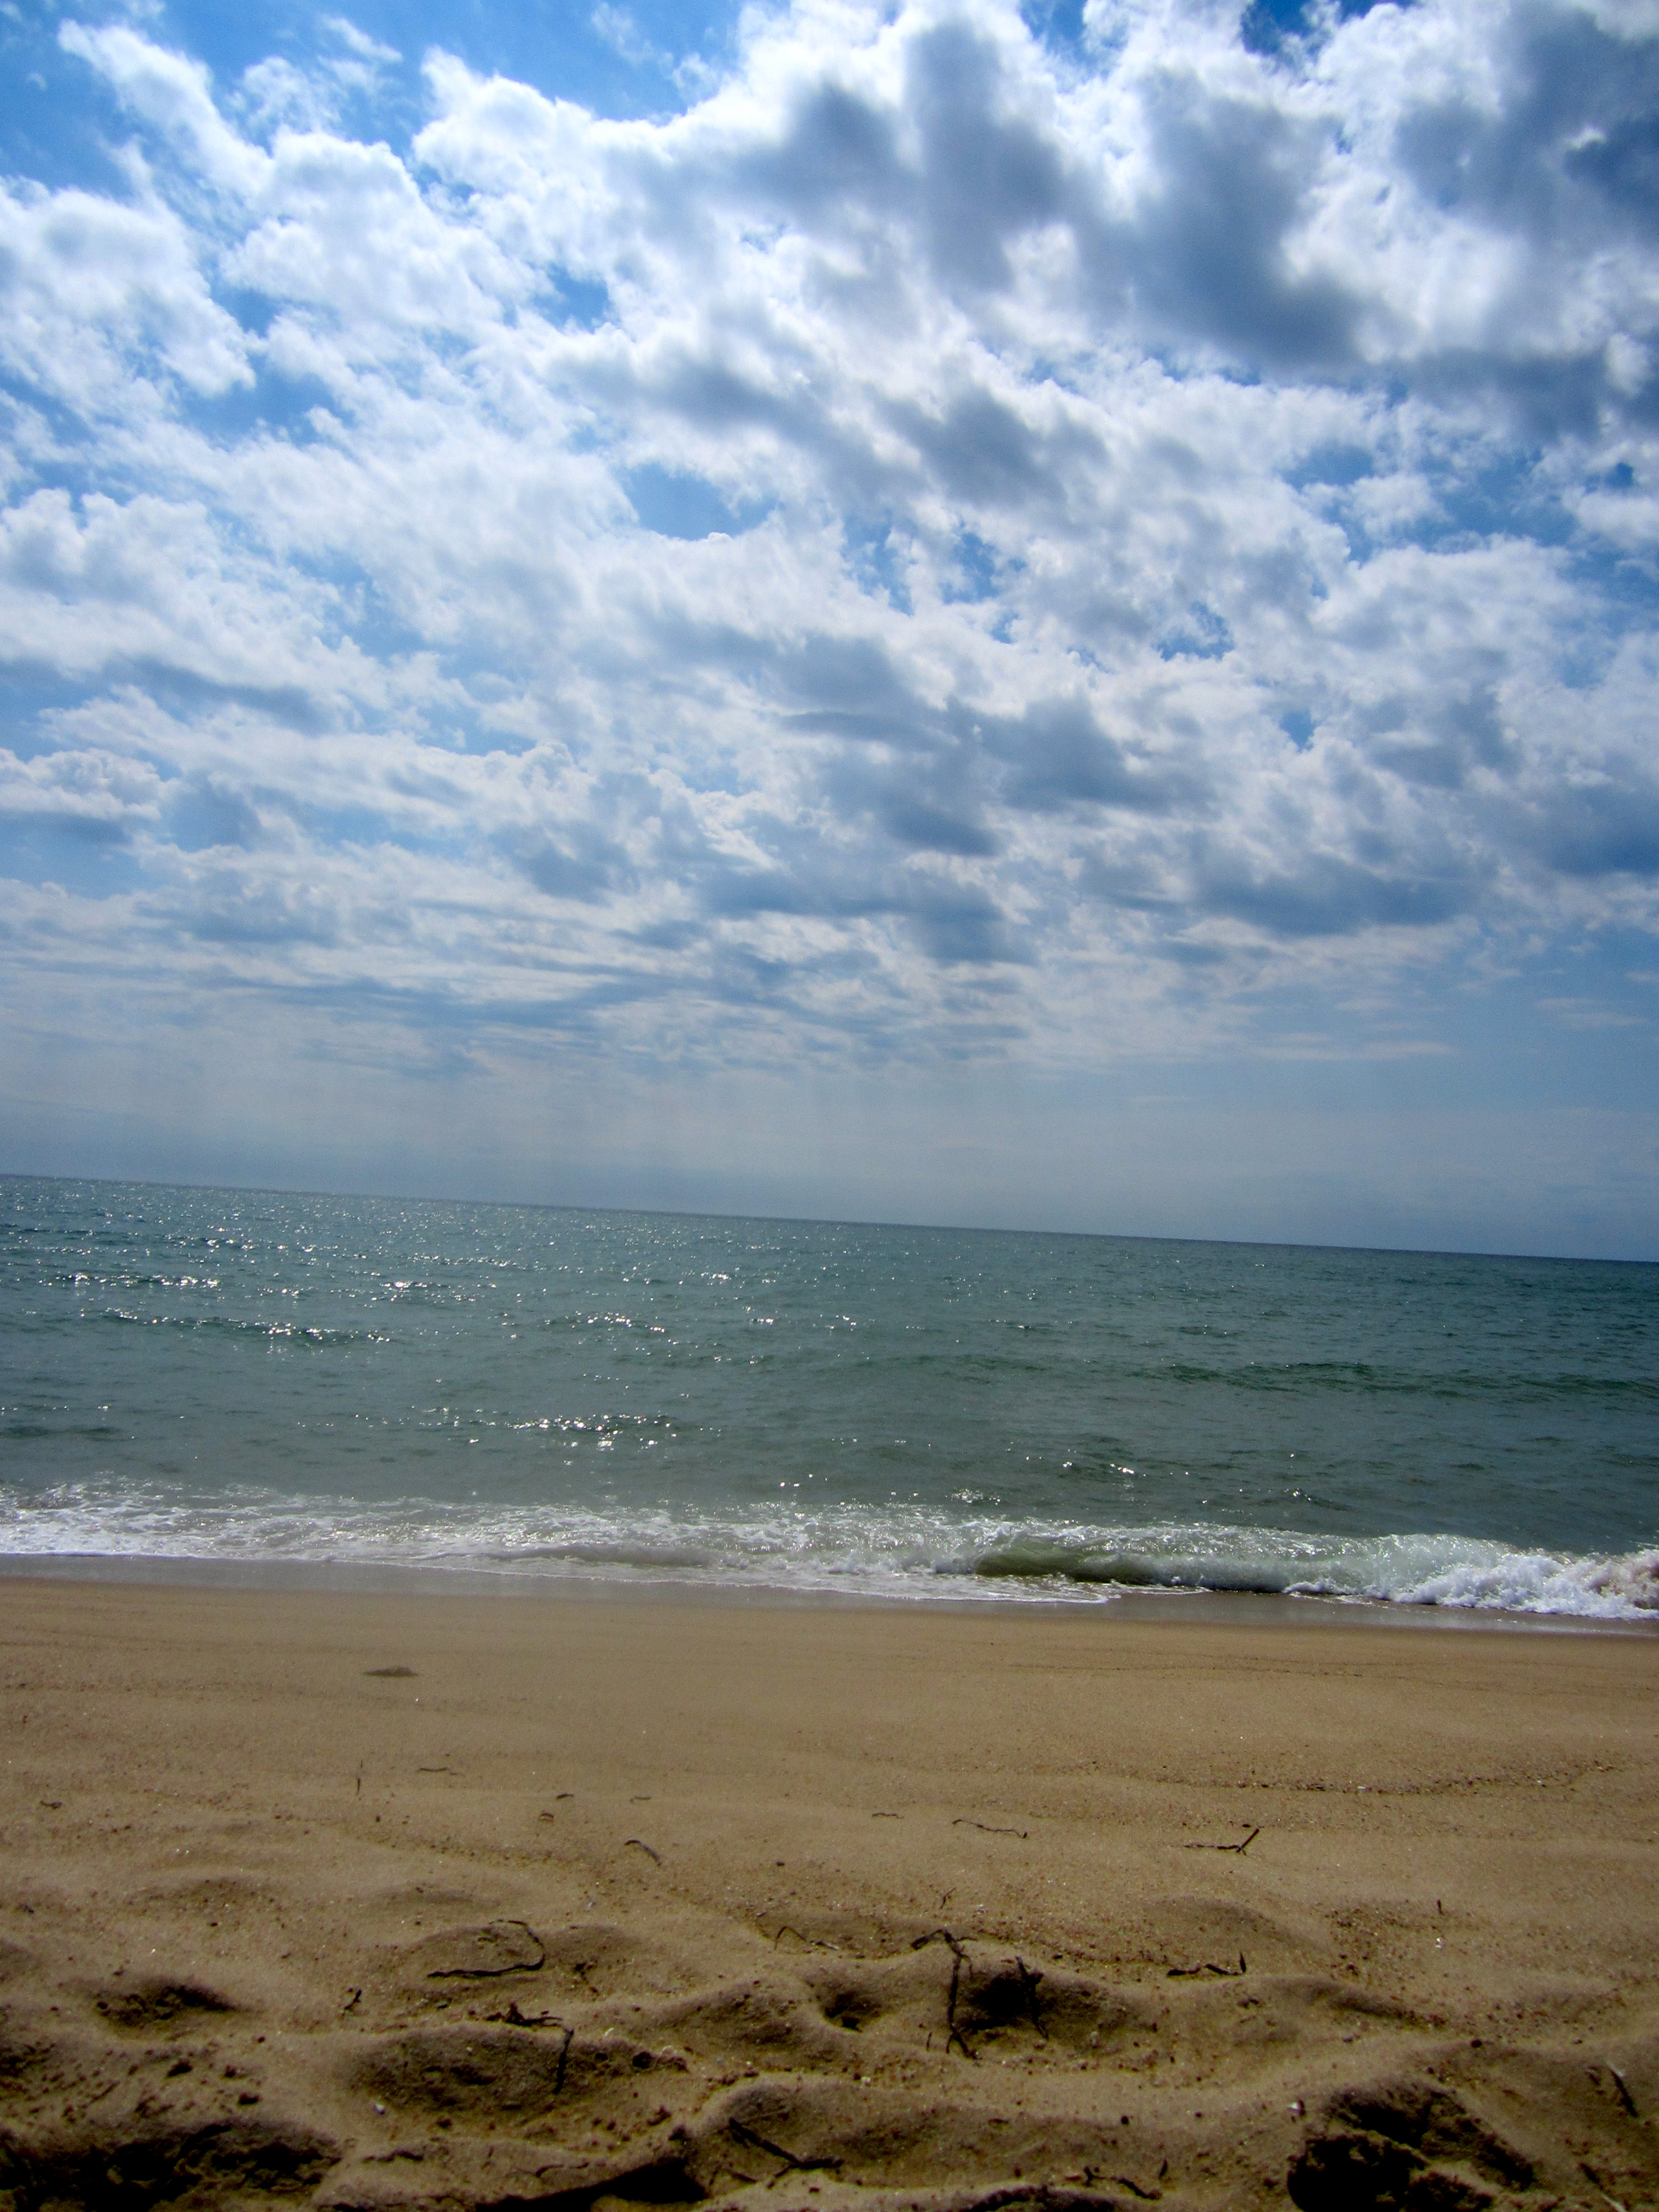 A simple photo, but a beauty. Sky, water, sand.